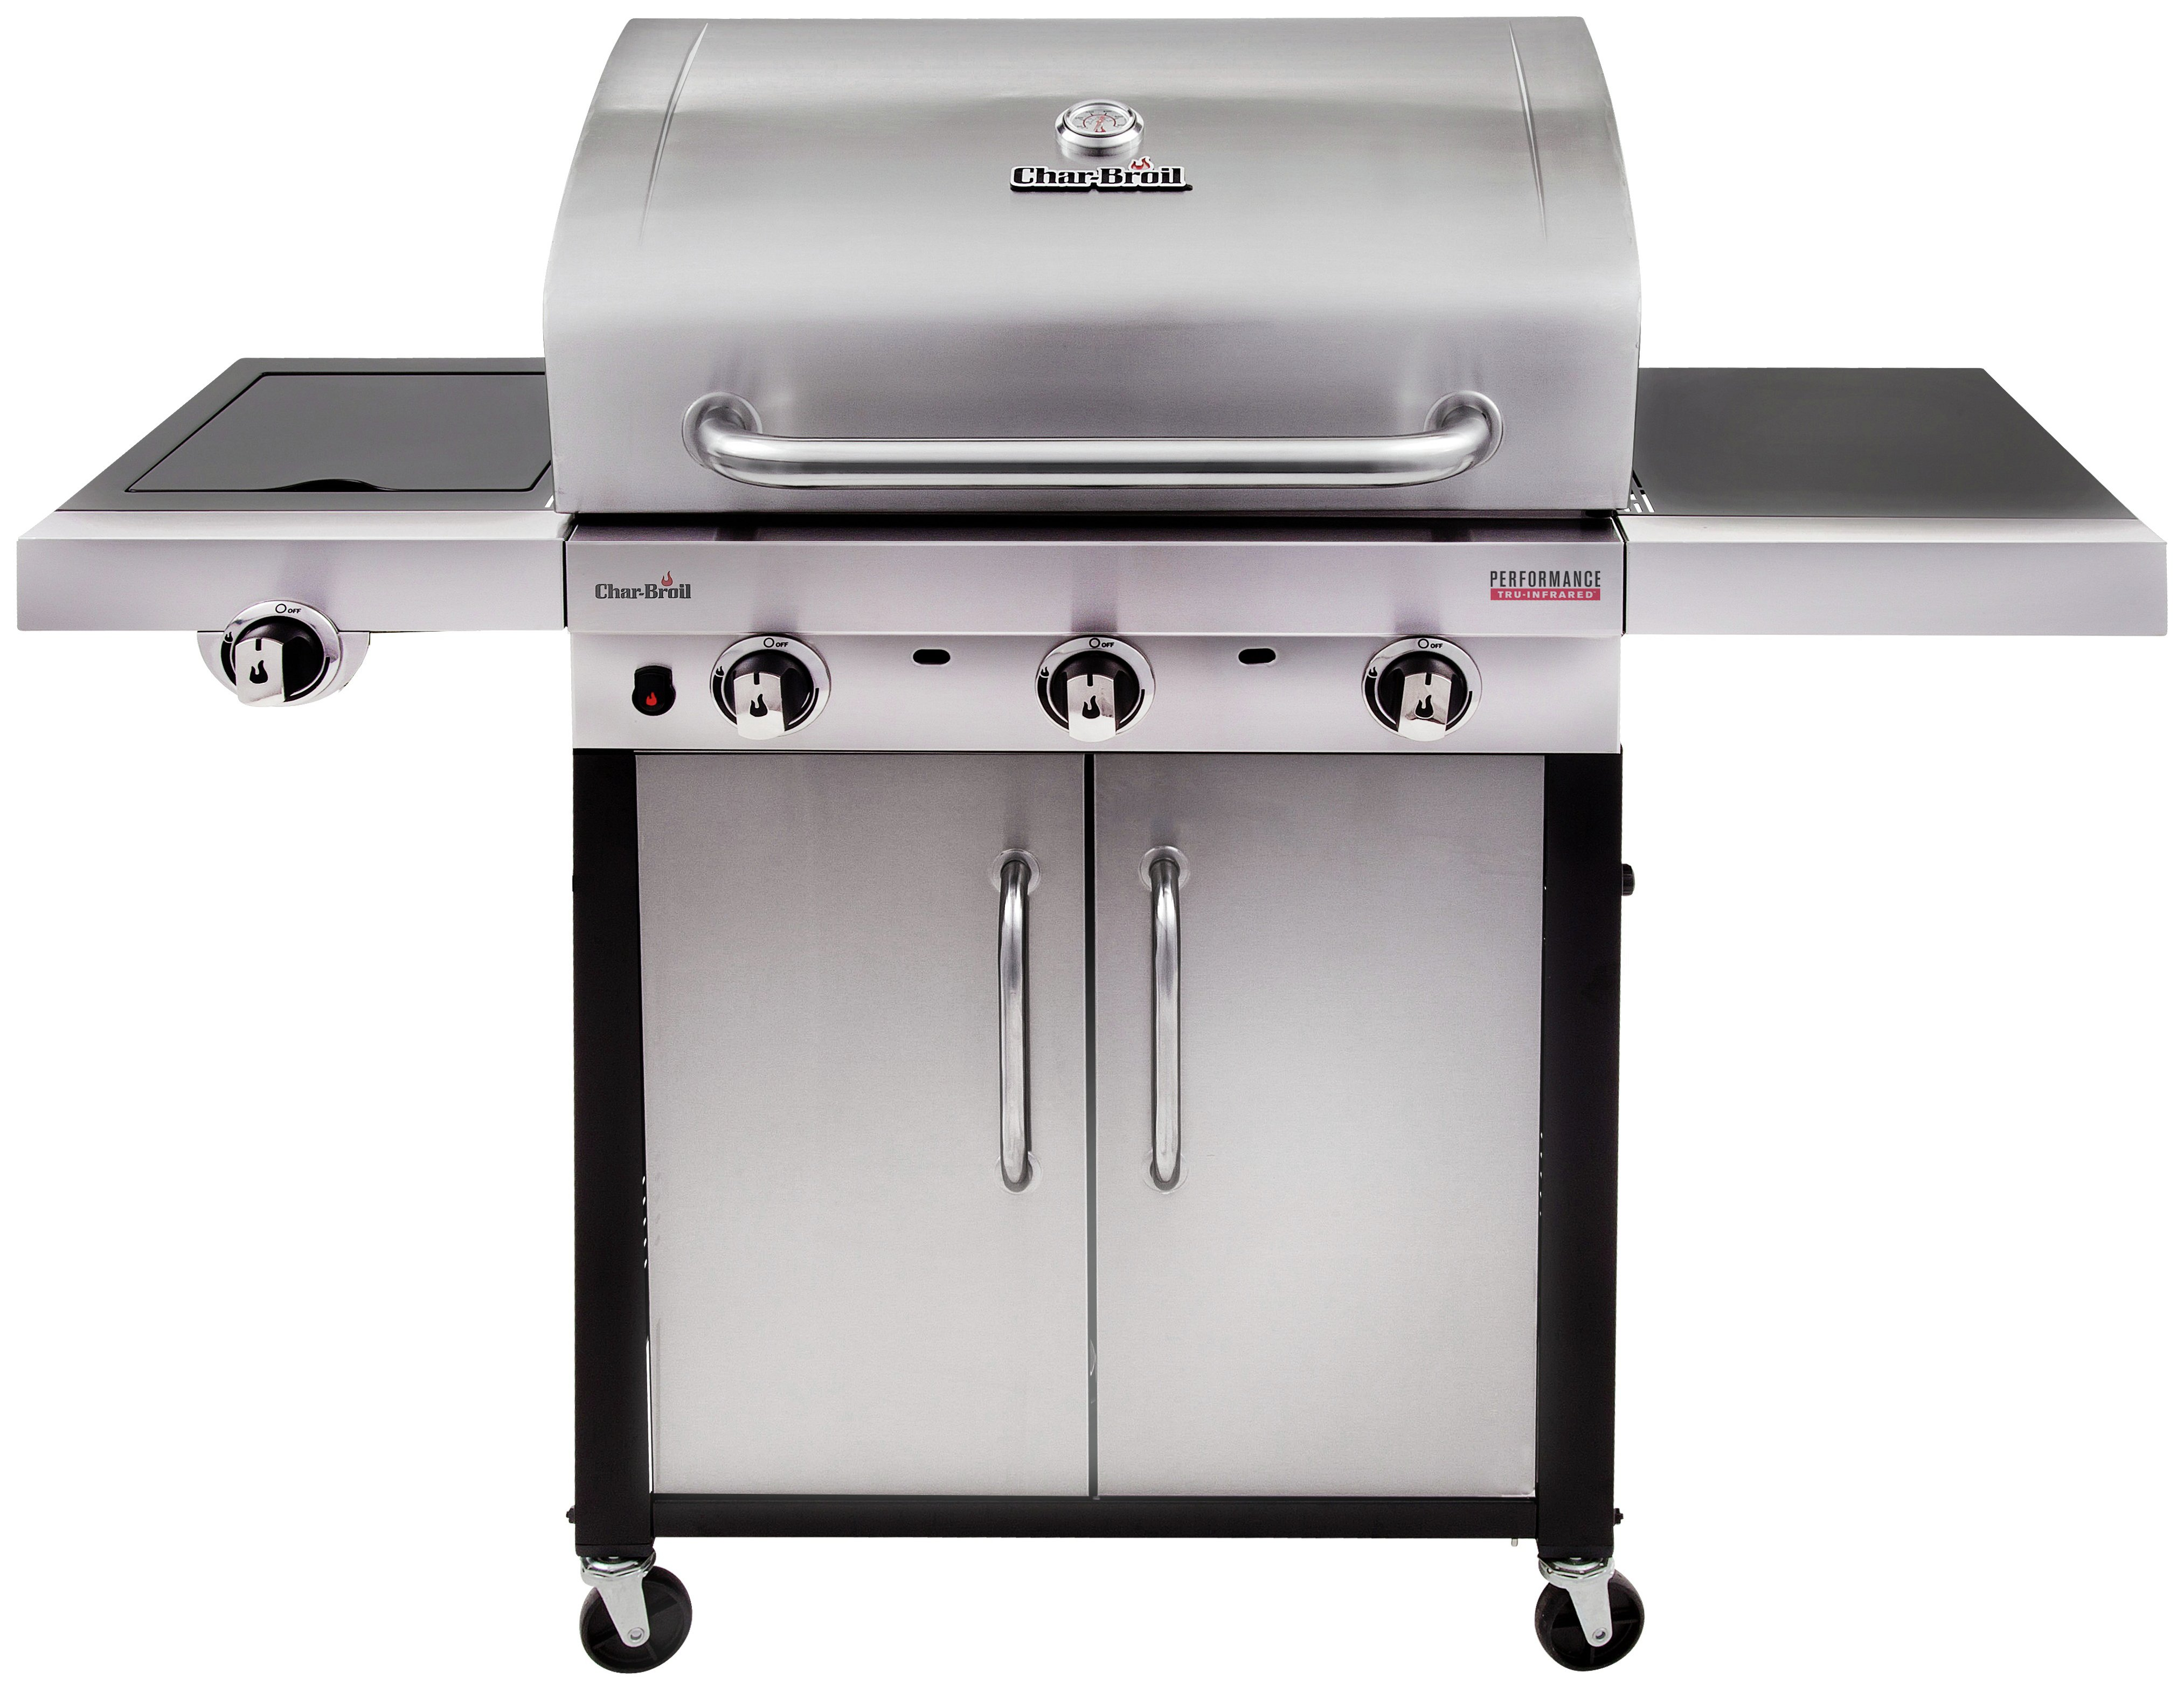 Image of Charbroil 3 Burner Tru Ired Stainless Steel - Gas BBQ